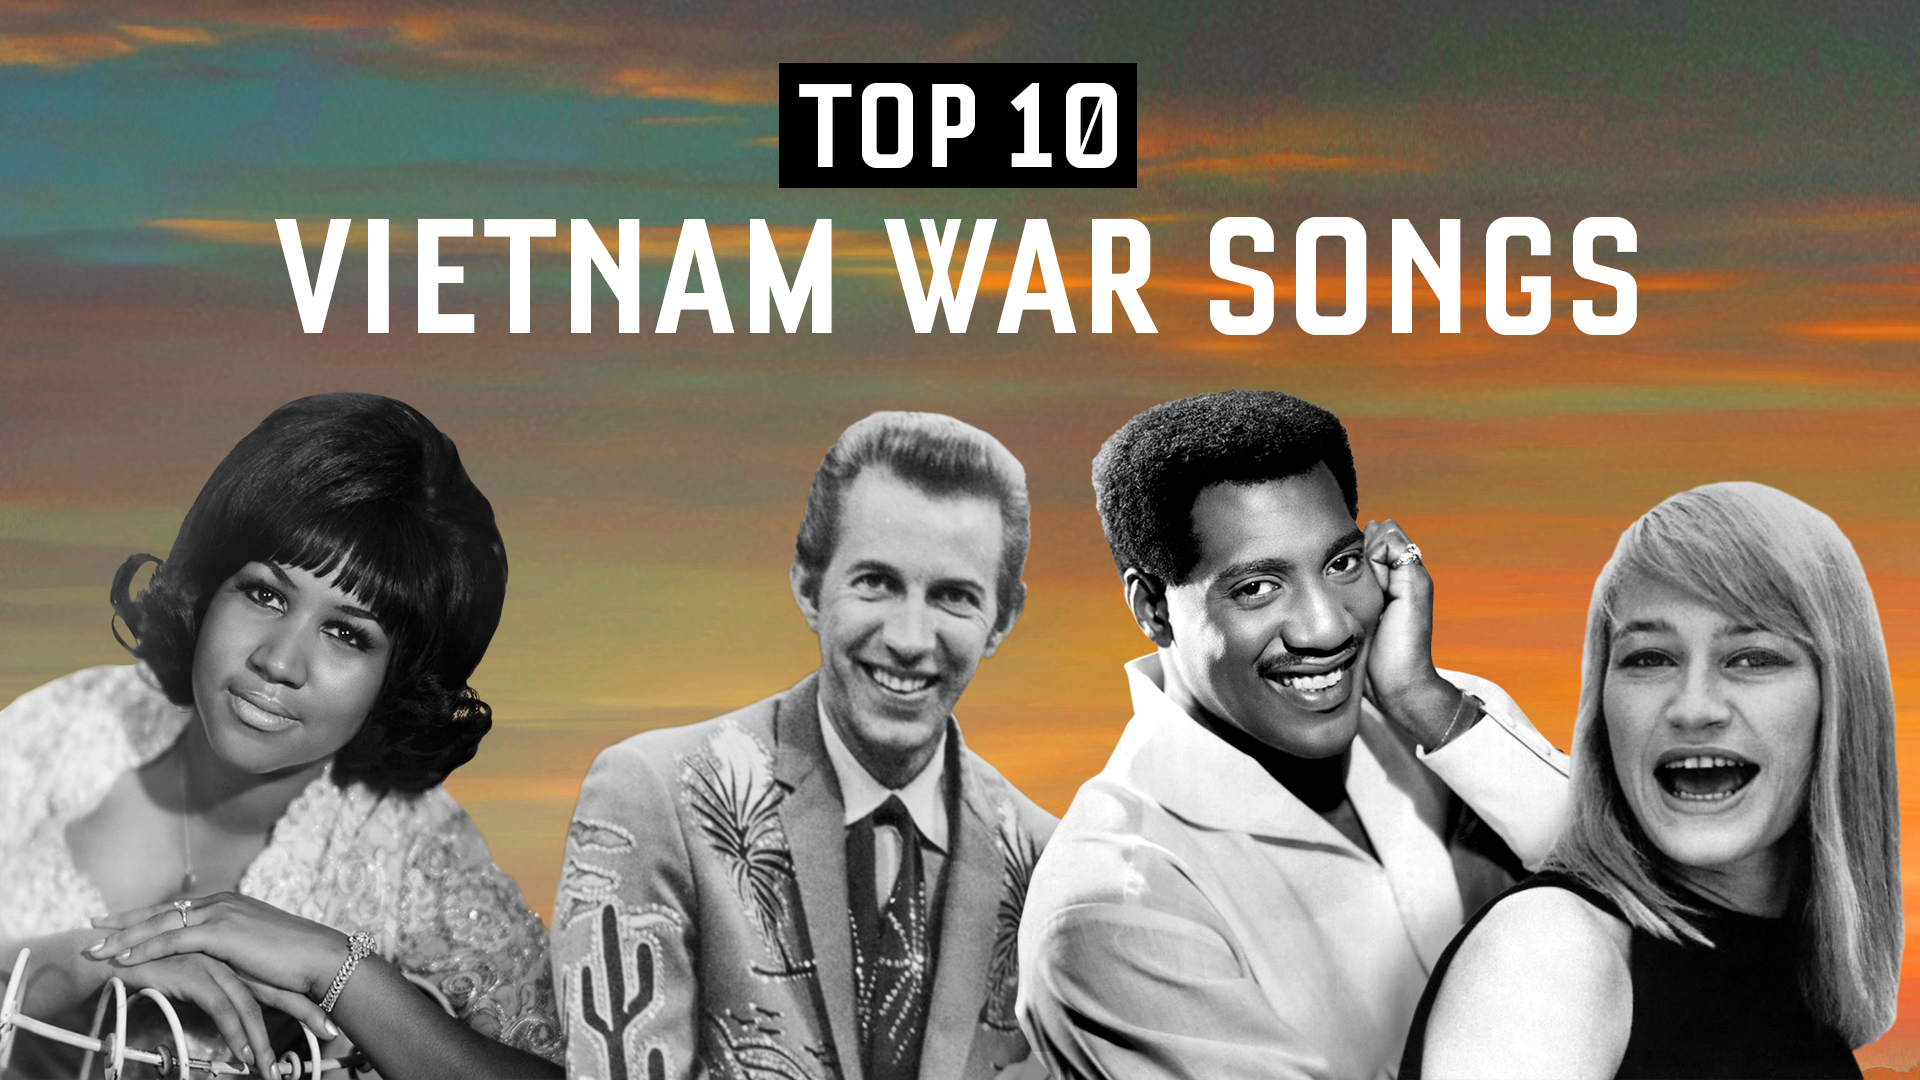 Top 10 Vietnam War Era Songs | Veterans Playlist